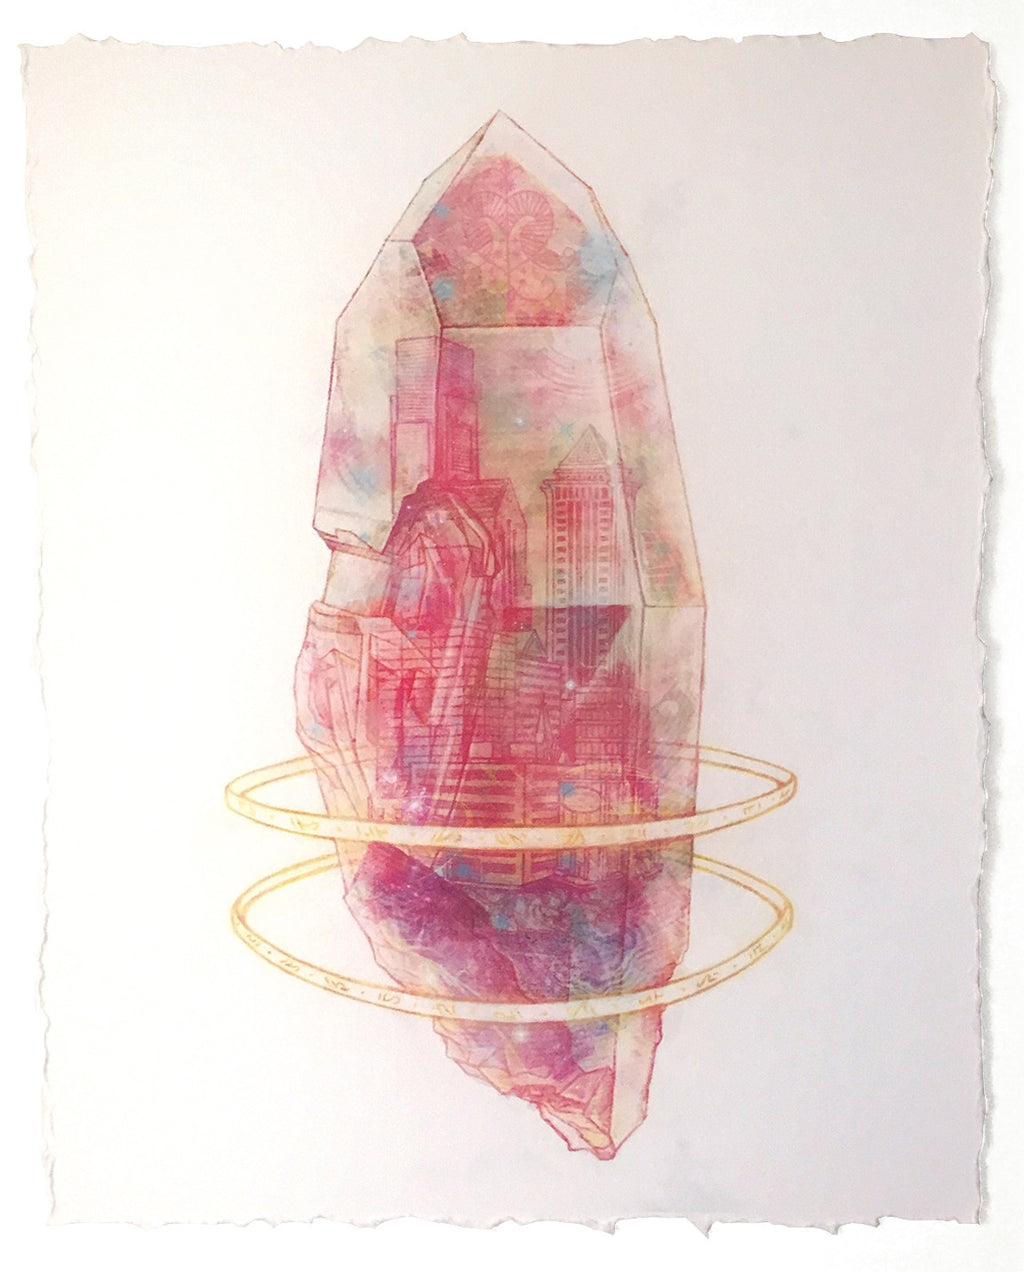 Crystal Shard II (unframed)